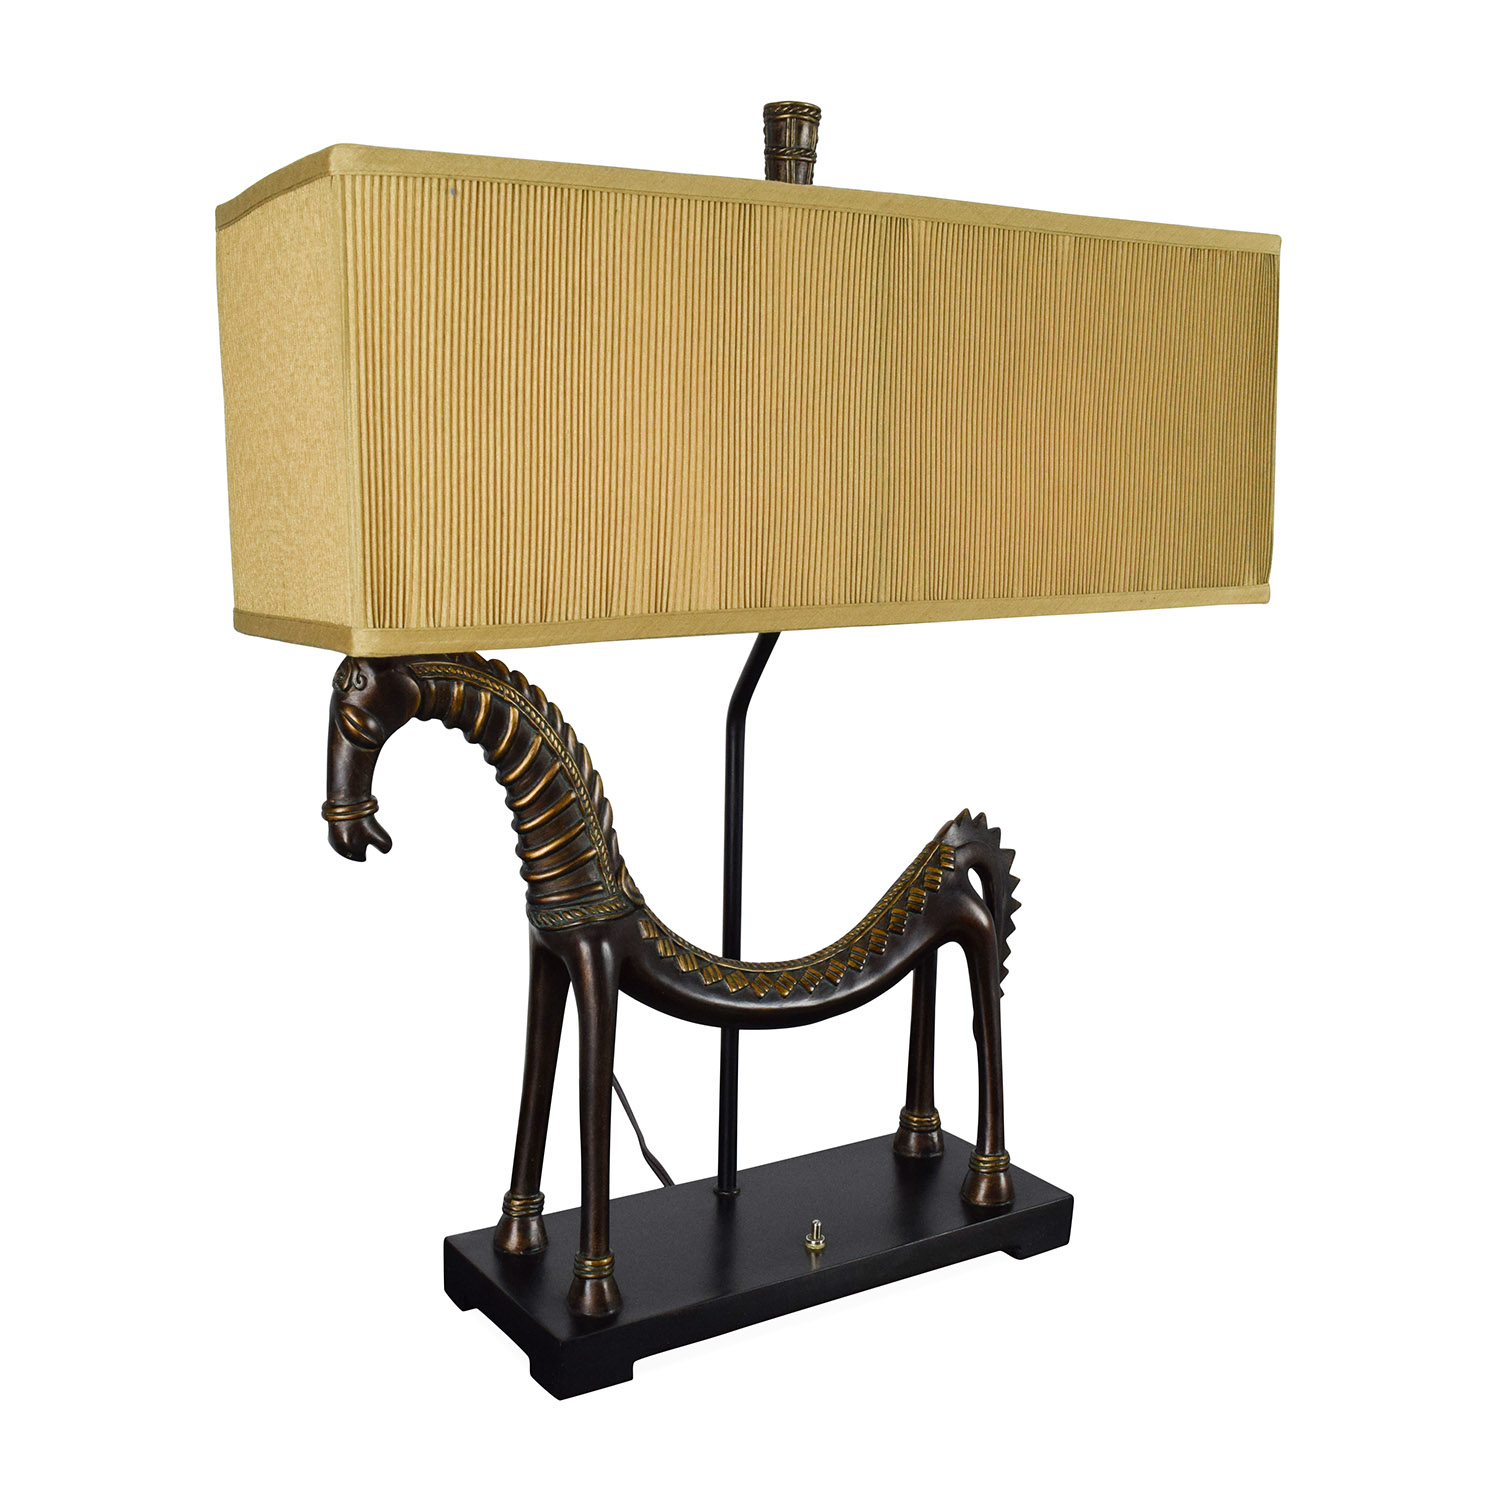 Uttermost Uttermost Tamil Horse Table Lamp for sale